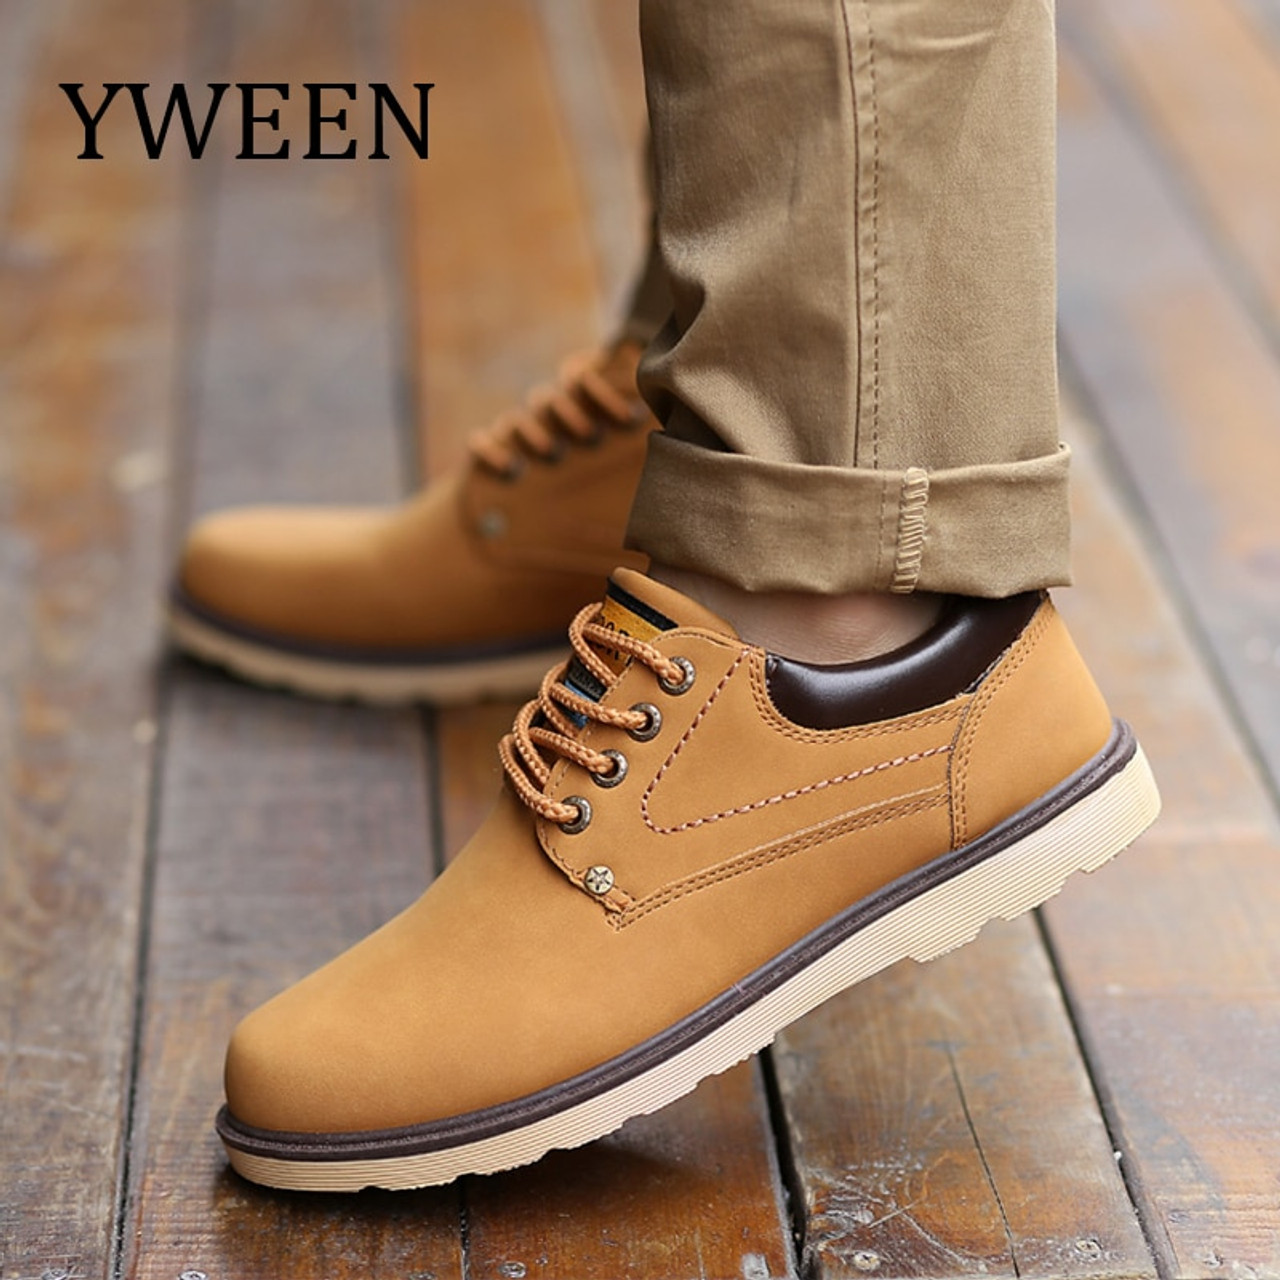 64fd93c94f9 YWEEN Hot Sale Shoes Men Spring Autumn Casual Shoes Men Solid Lace-up Men's  Shoes Fashion pu Leather Shoes